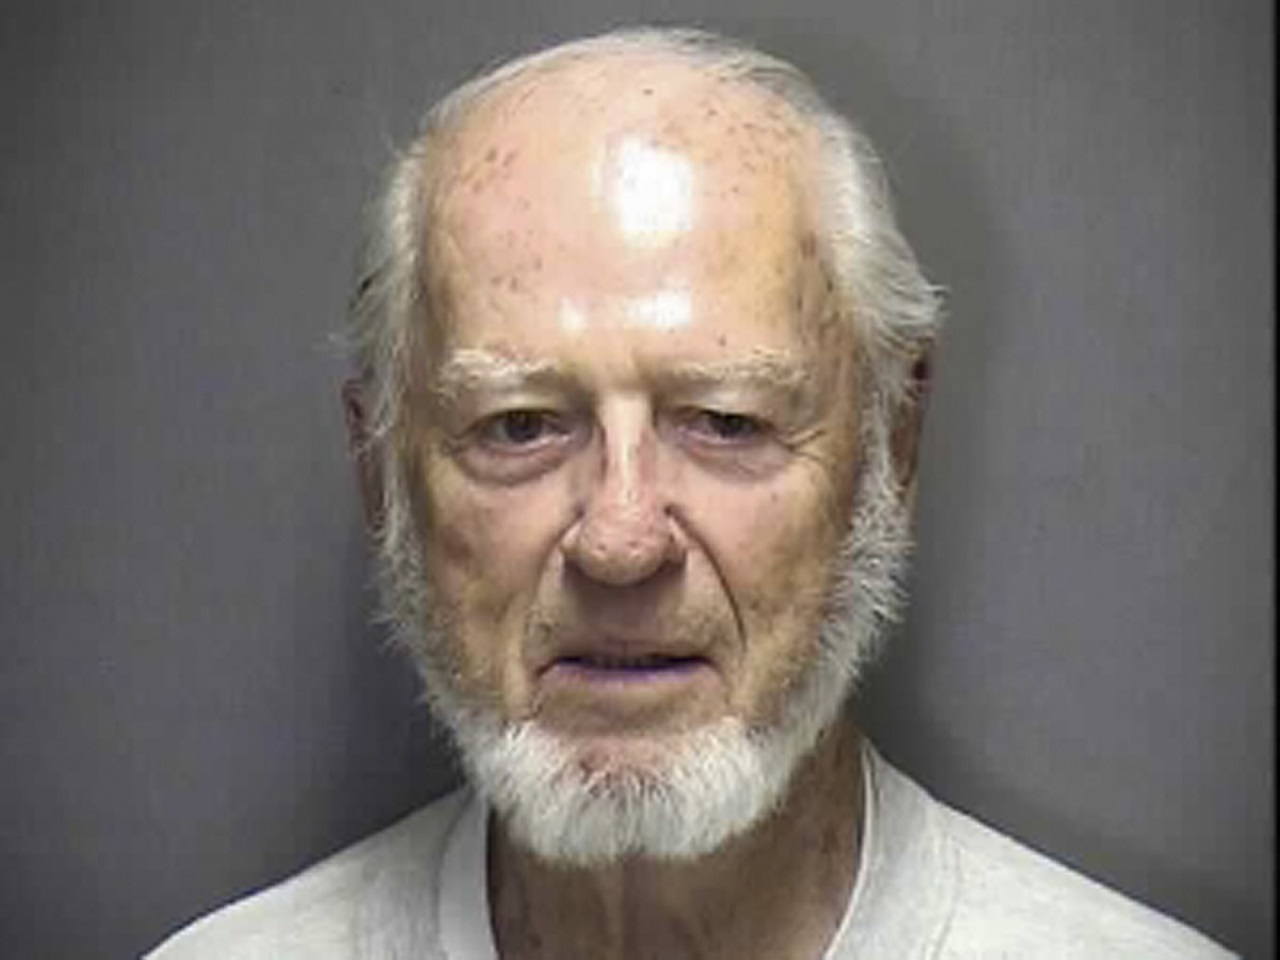 This undated identification photo released via the Commonwealth of Massachusetts Sex Offender Registry Board website shows Paul Shanley, released Friday, July 28, 2017, from the Old Colony Correctional Center in Bridgewater, Mass. Shanley, now 86, was a figure in the Boston Roman Catholic priest sex abuse scandal.